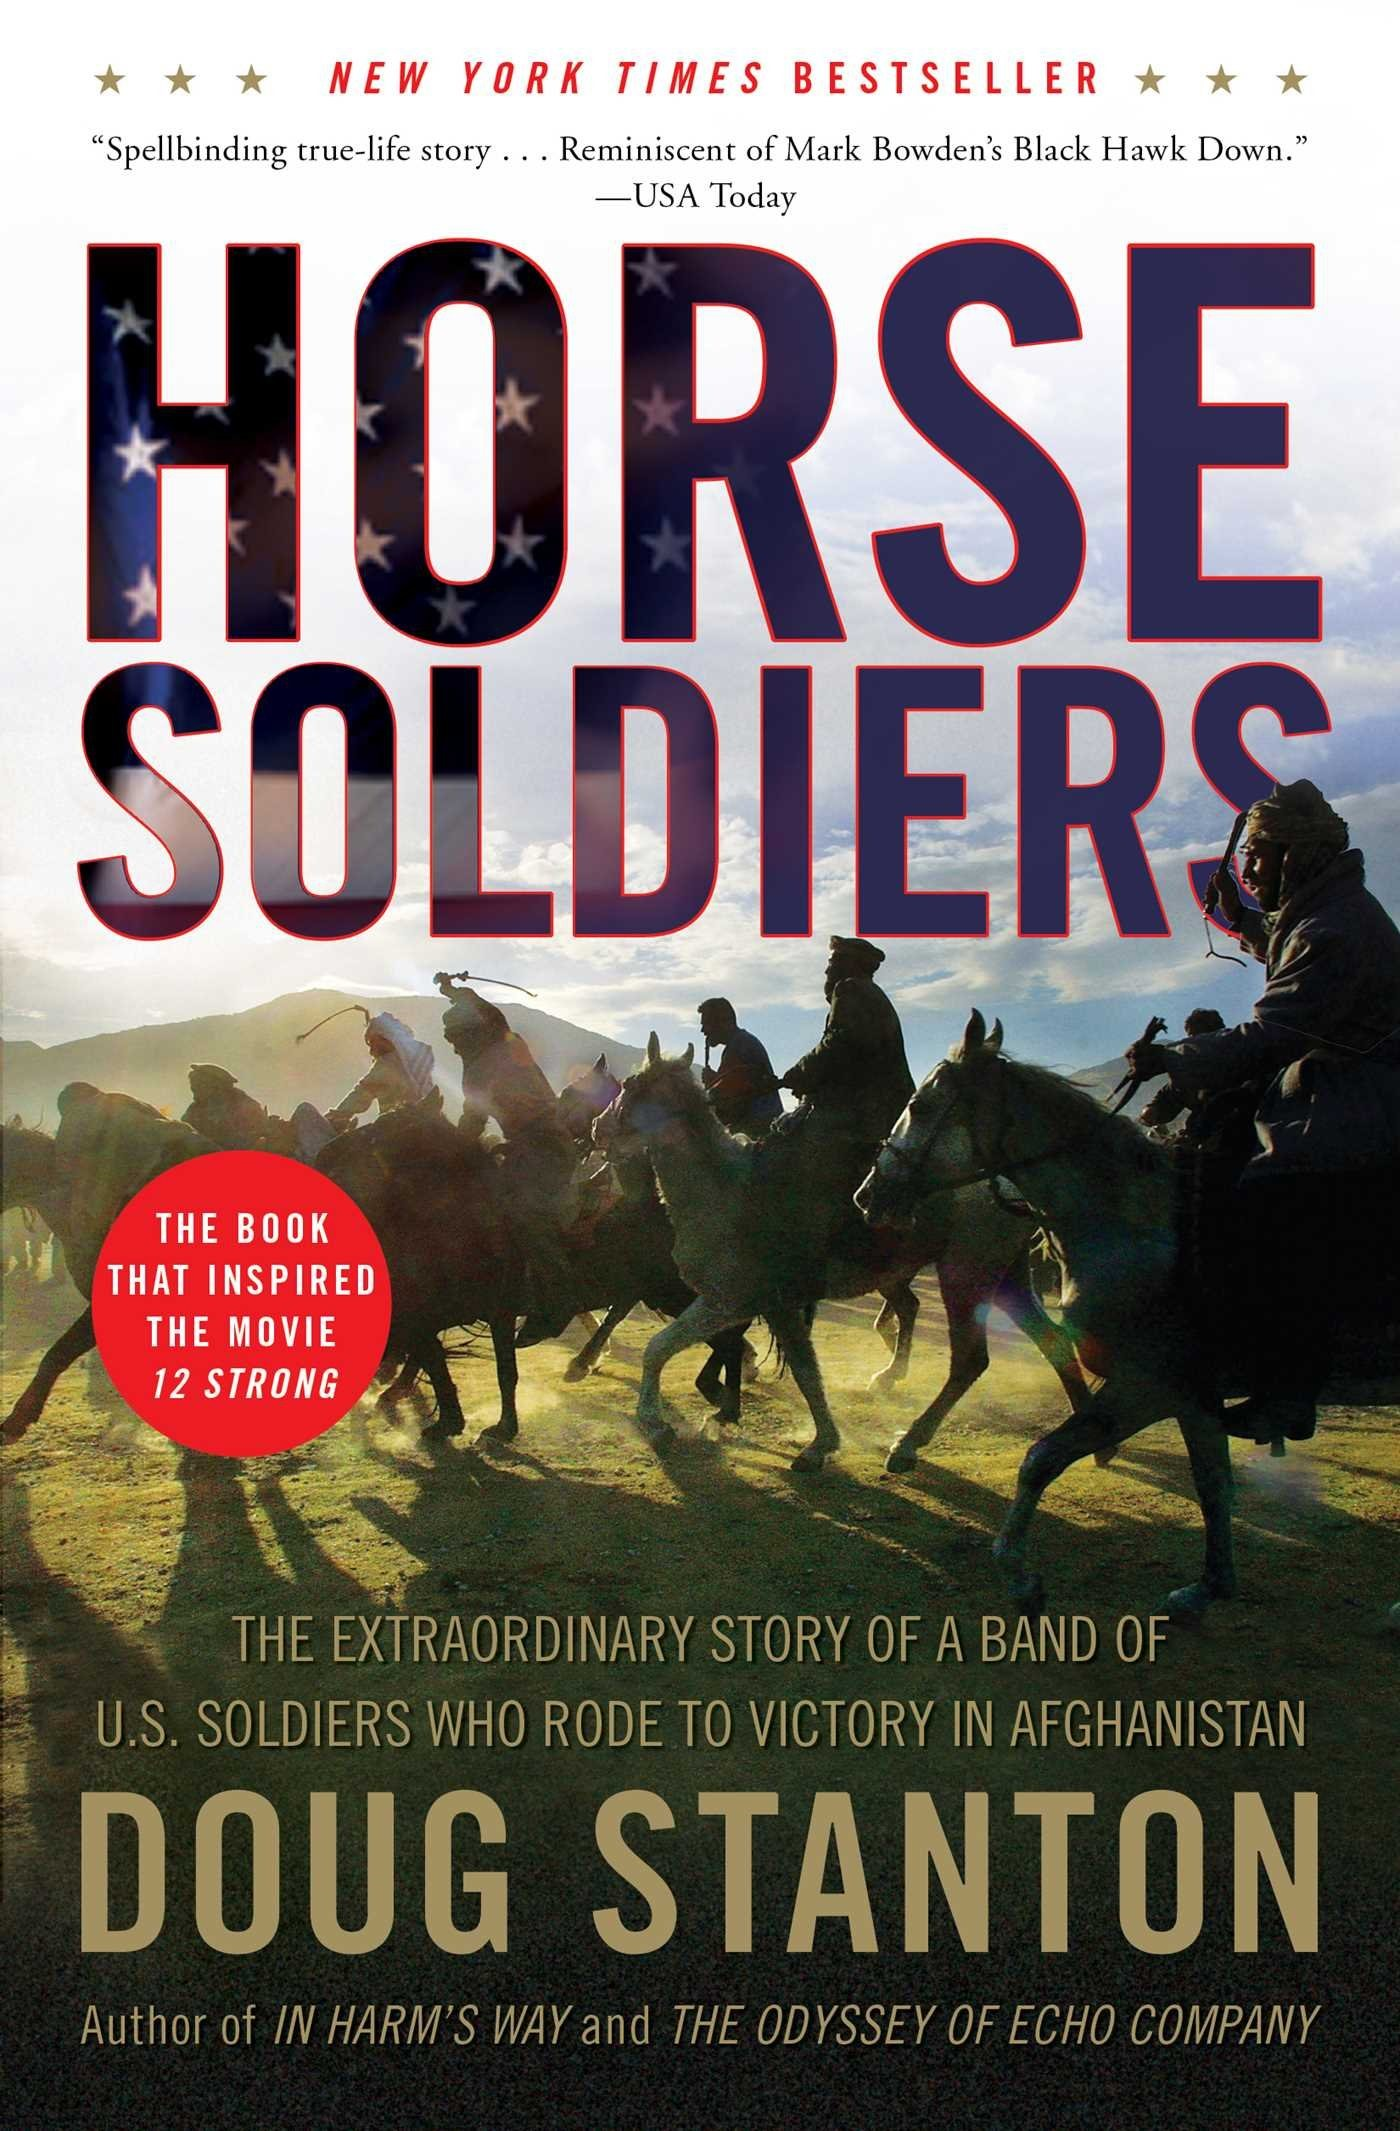 Horse Soldiers : the extraordinary story of a band of U.S. soldiers who rode to victory in Afghanistan by Doug Stanton